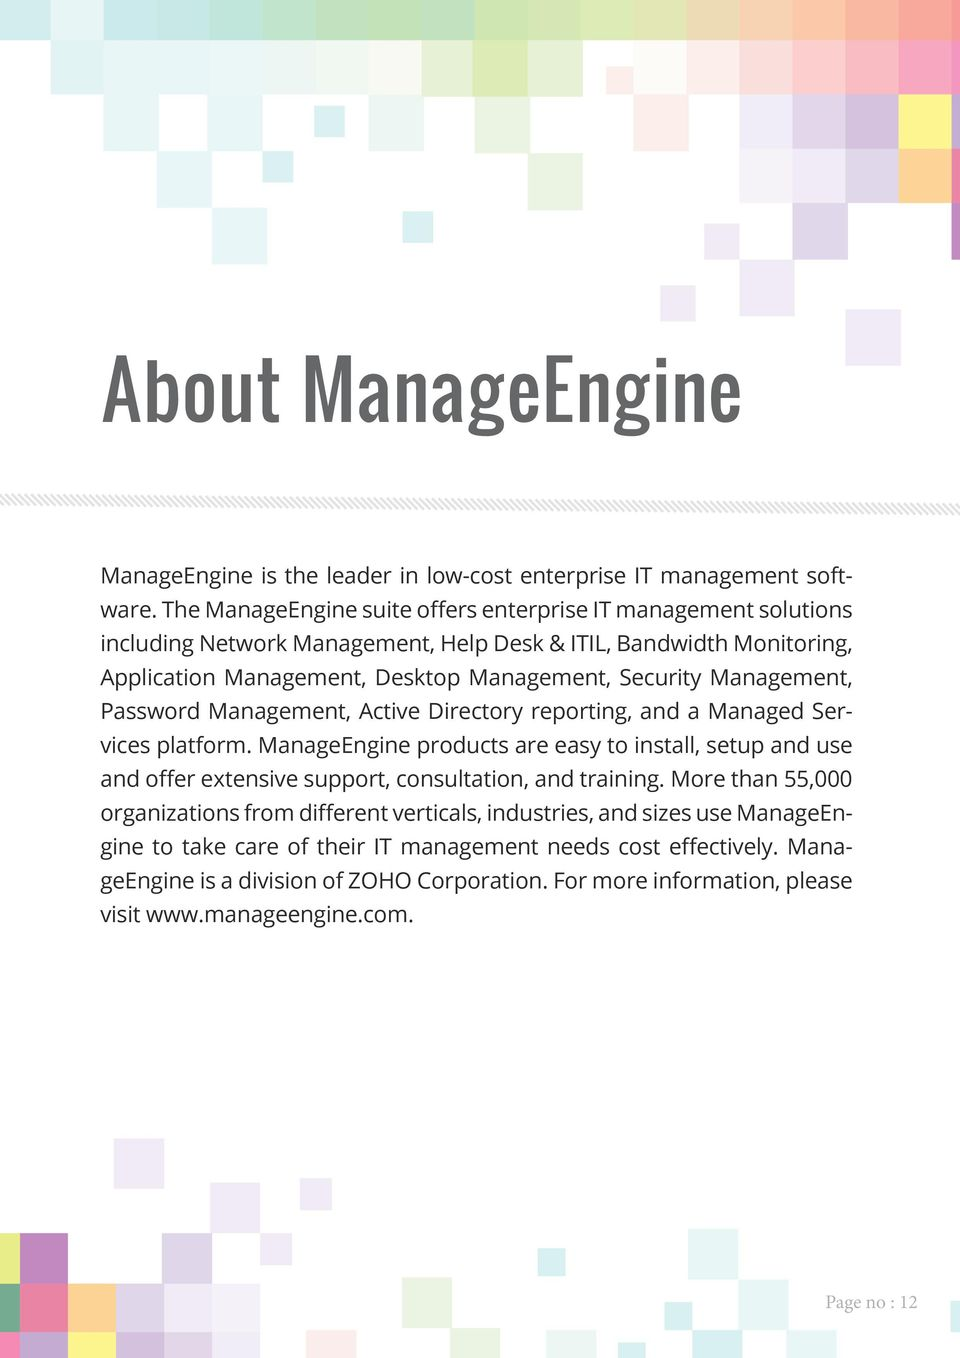 Management, Password Management, Active Directory reporting, and a Managed Services platform.